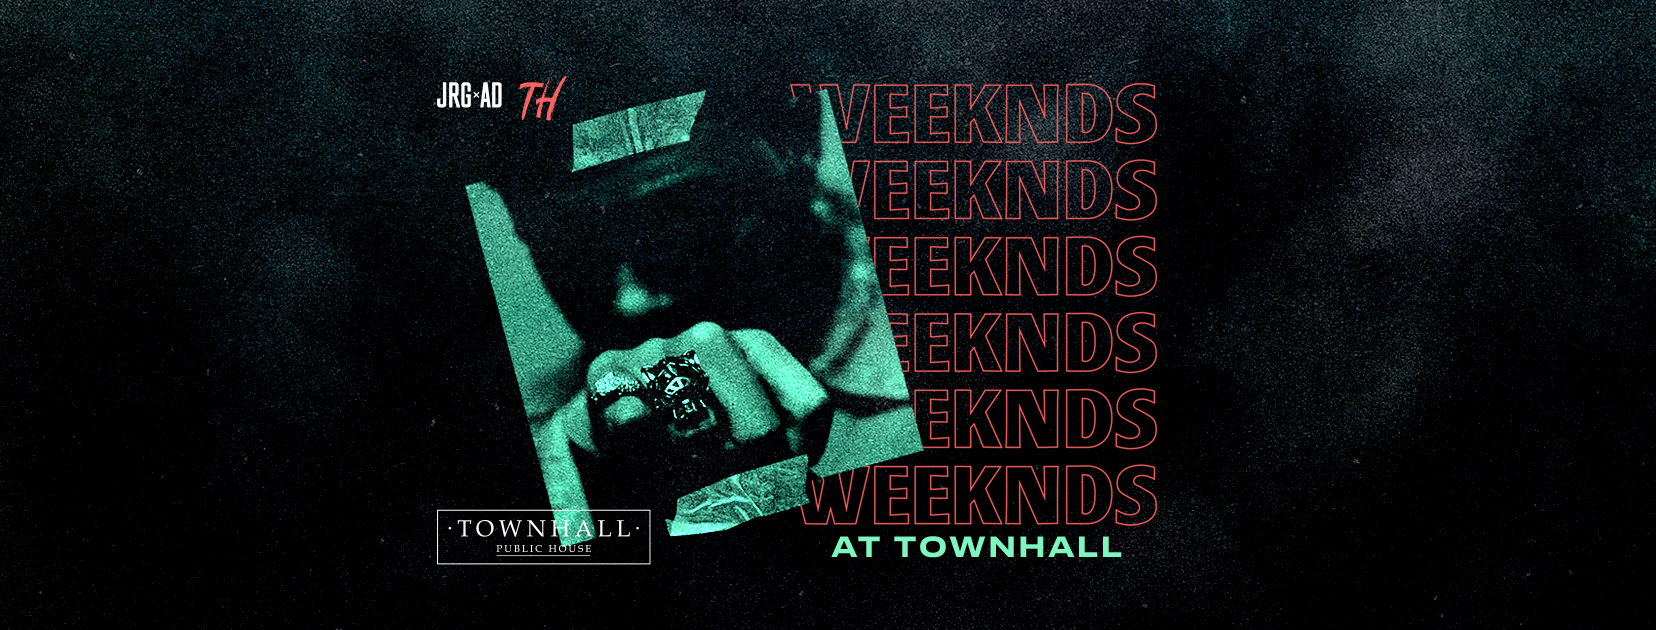 The Weeknds at Townhall Public House